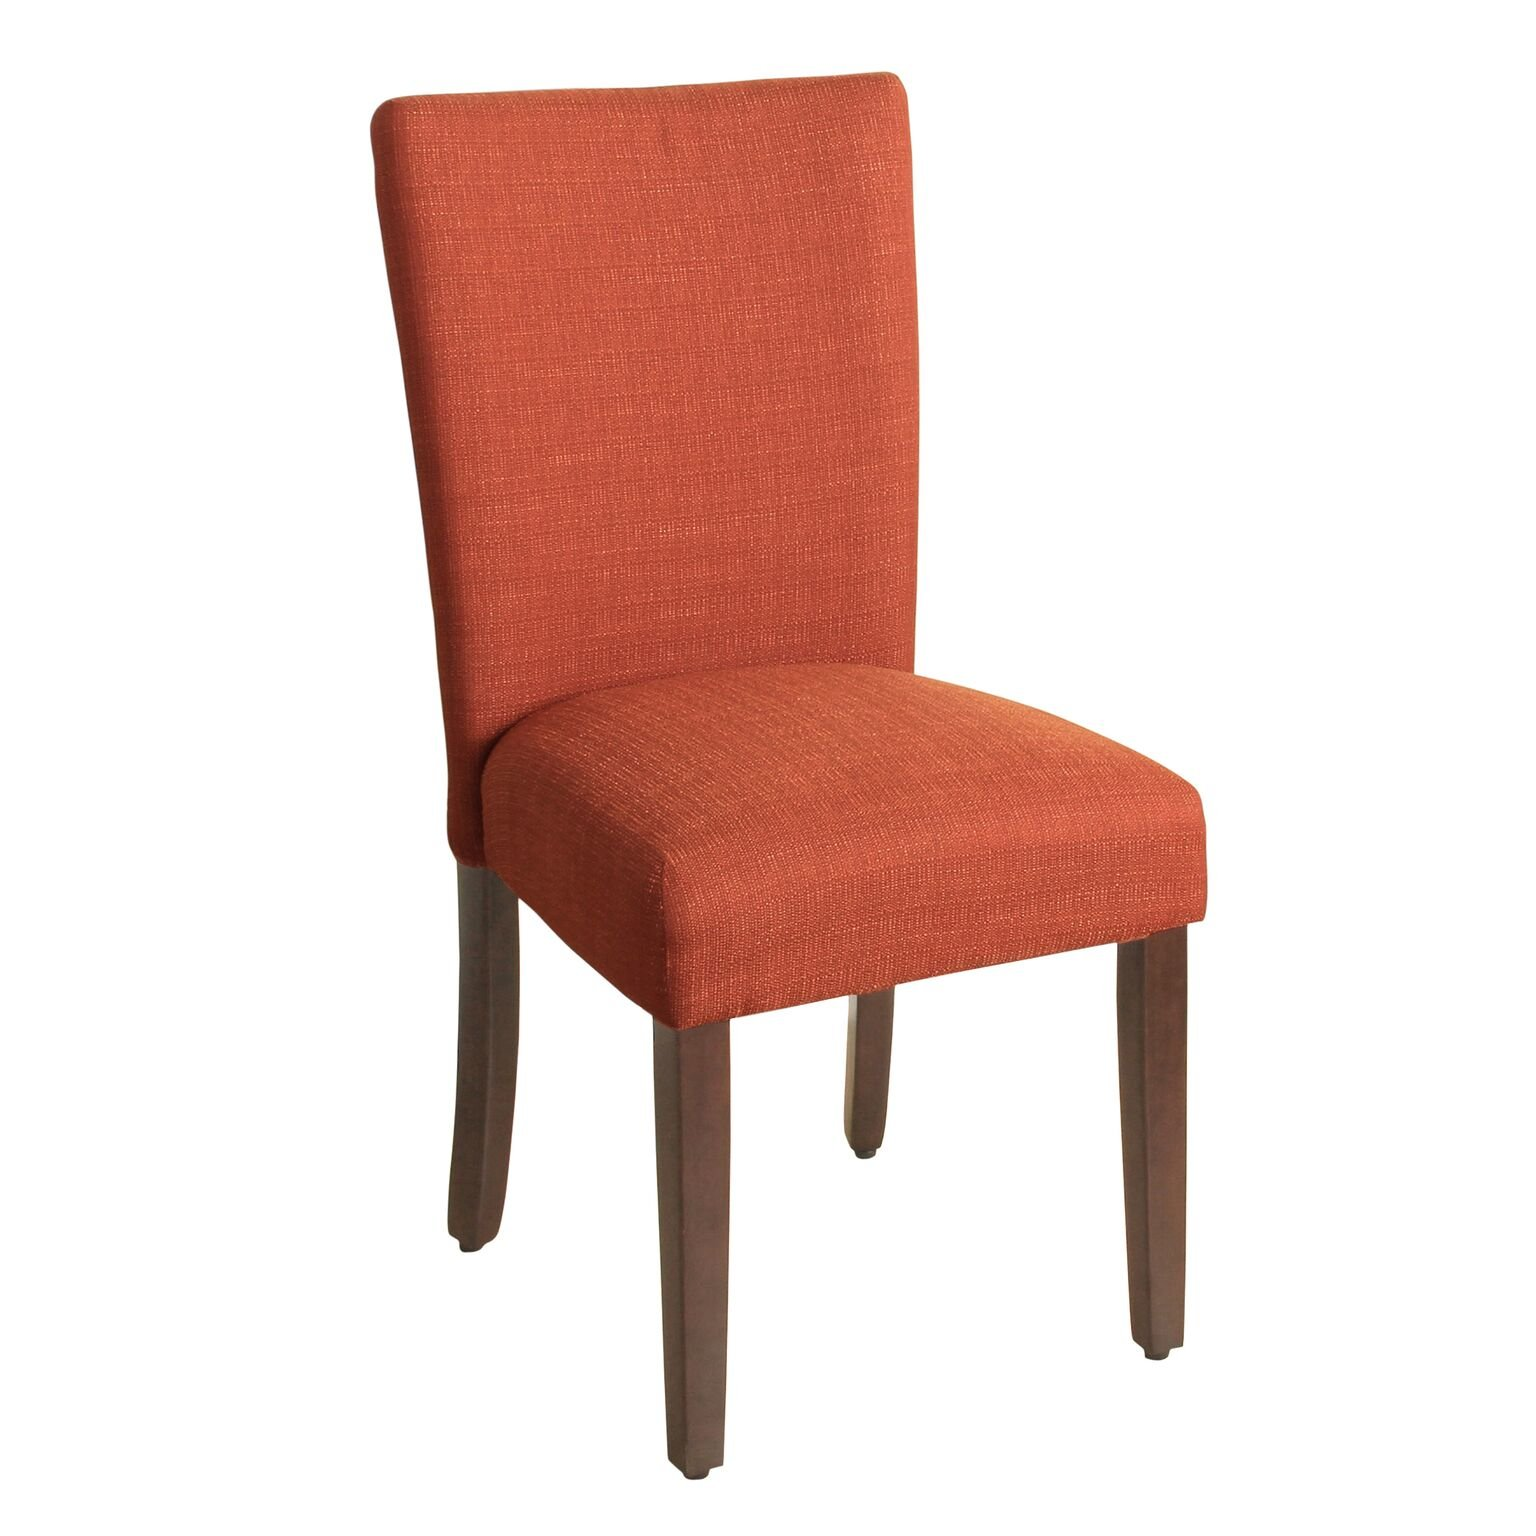 HomePop Parsons Classic Upholstered Accent Dining Chair, Single Pack, Orange